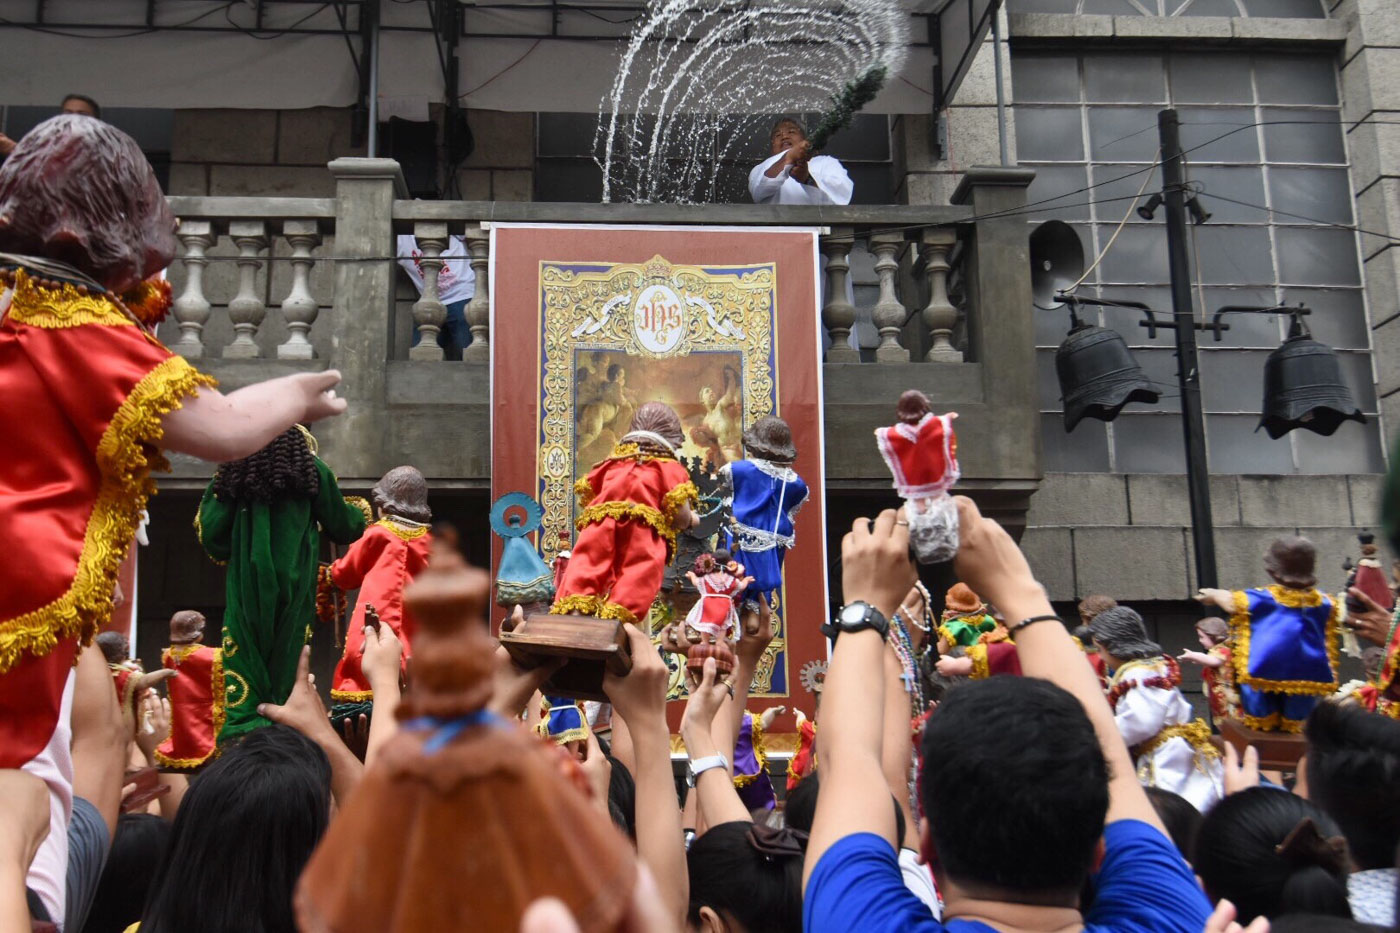 FIESTA RITUAL. Priests and their assistants sprinkle holy water on Santo Niu00f1o images during the Feast of the Santo Niu00f1o on January 21, 2018. Photo by Angie de Silva/Rappler